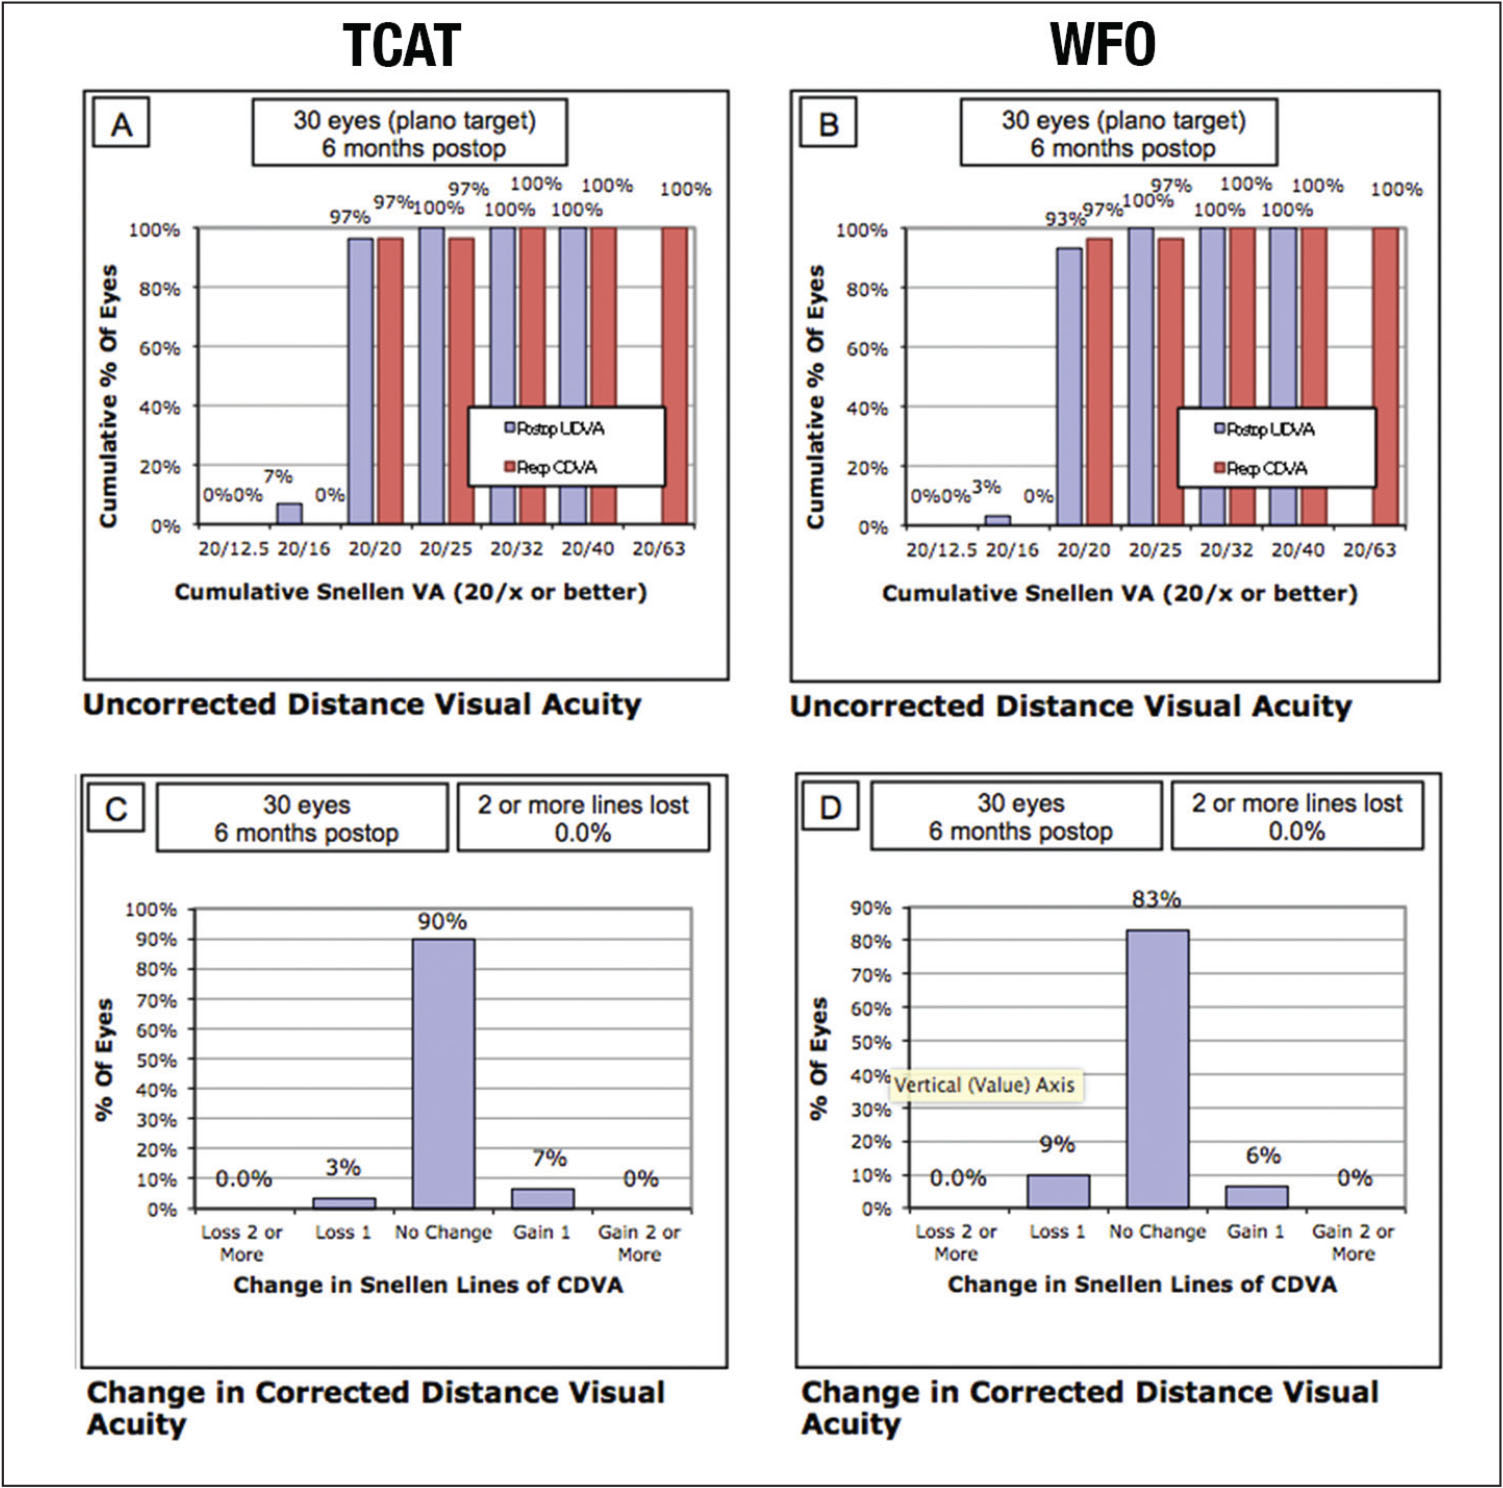 Standard refractive graphs showing refractive outcomes 6 months after surgery in the wavefront-optimized (WFO) ablation and topography-guided custom ablation (TCAT) groups. Percentage of eyes that achieved uncorrected visual acuity of 20/20 in the (A) TCAT and (B) WFO groups. The number of lines lost and gained in the (C) TCAT and (D) WFO groups. CDVA = corrected distance visual acuity; UDVA = uncorrected distance visual acuity